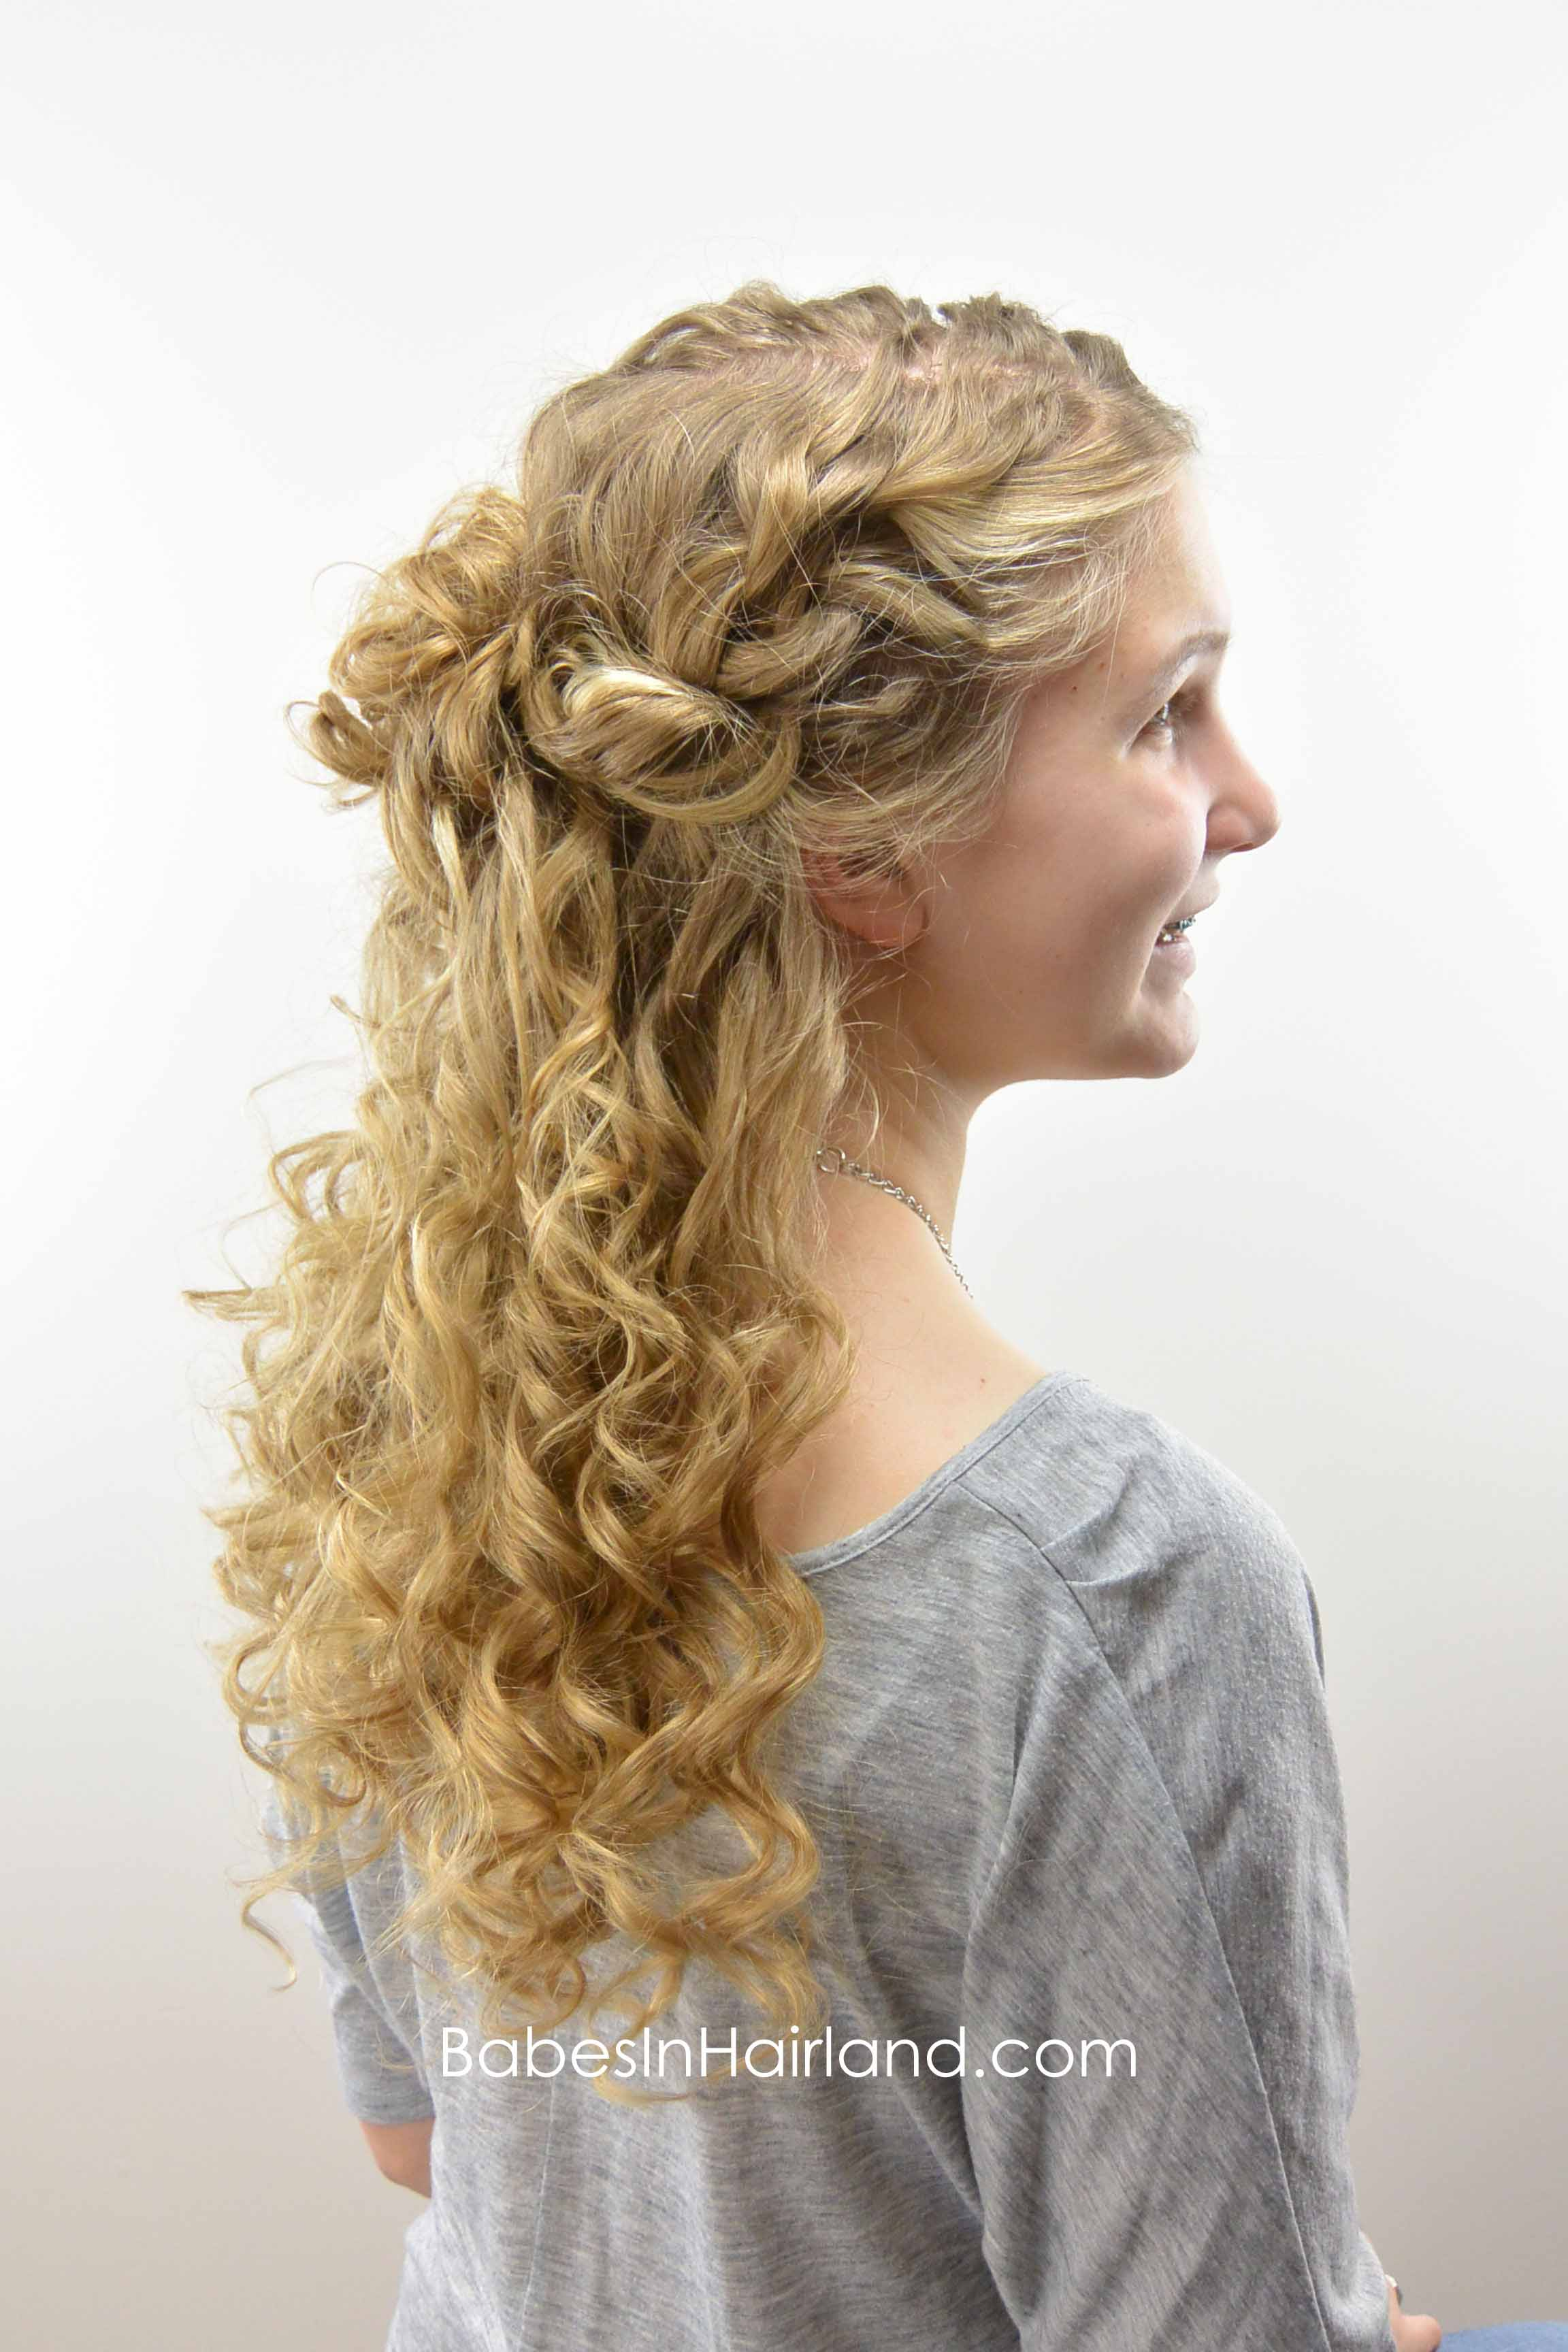 Half Up Style For Curly Hair Babes In Hairland